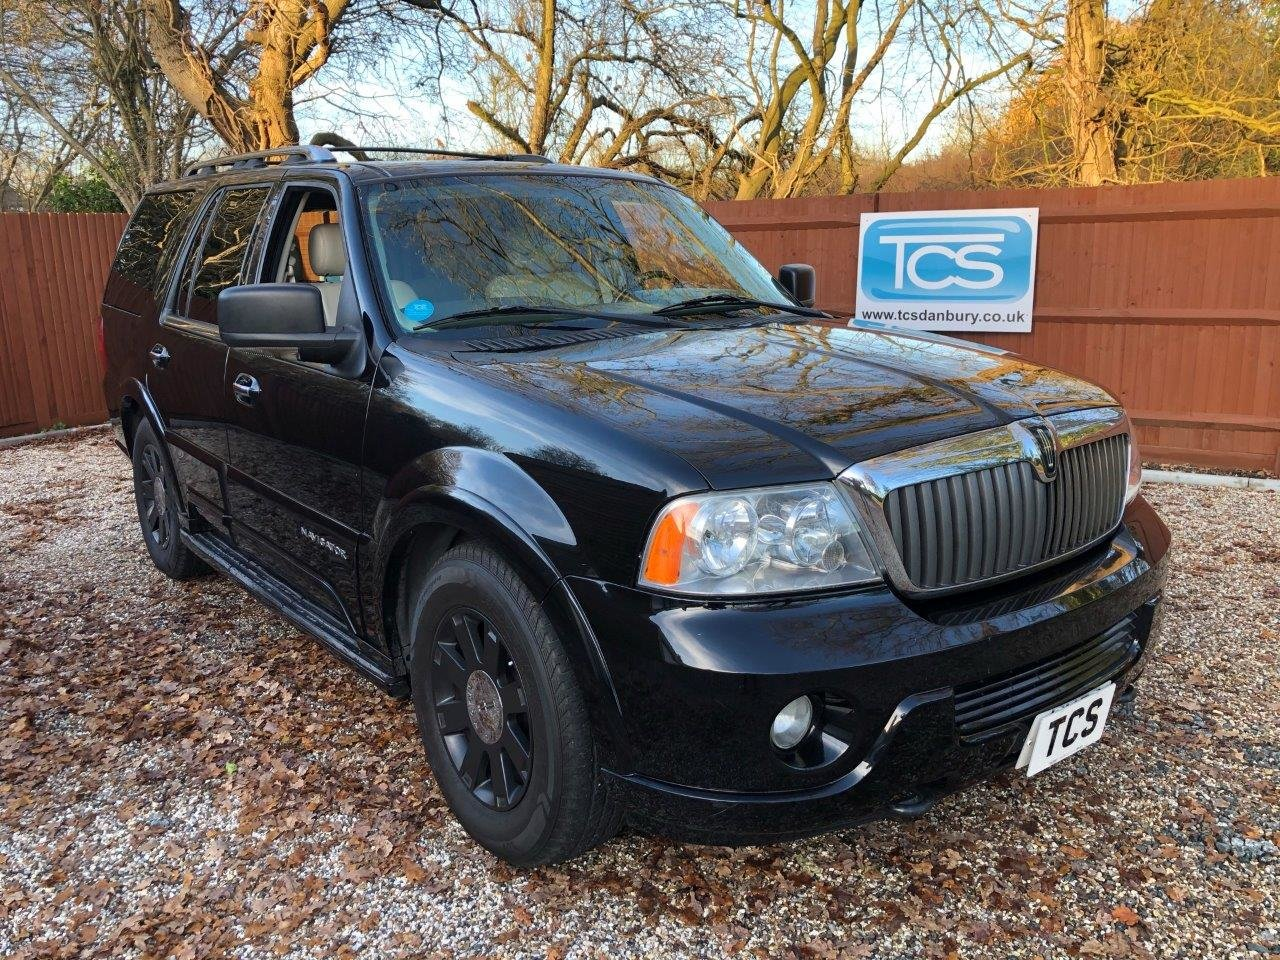 2004 Lincoln Navigator 4x4 SUV 7-Seater 5.4i V8 +LPG Conversion For Sale (picture 1 of 12)